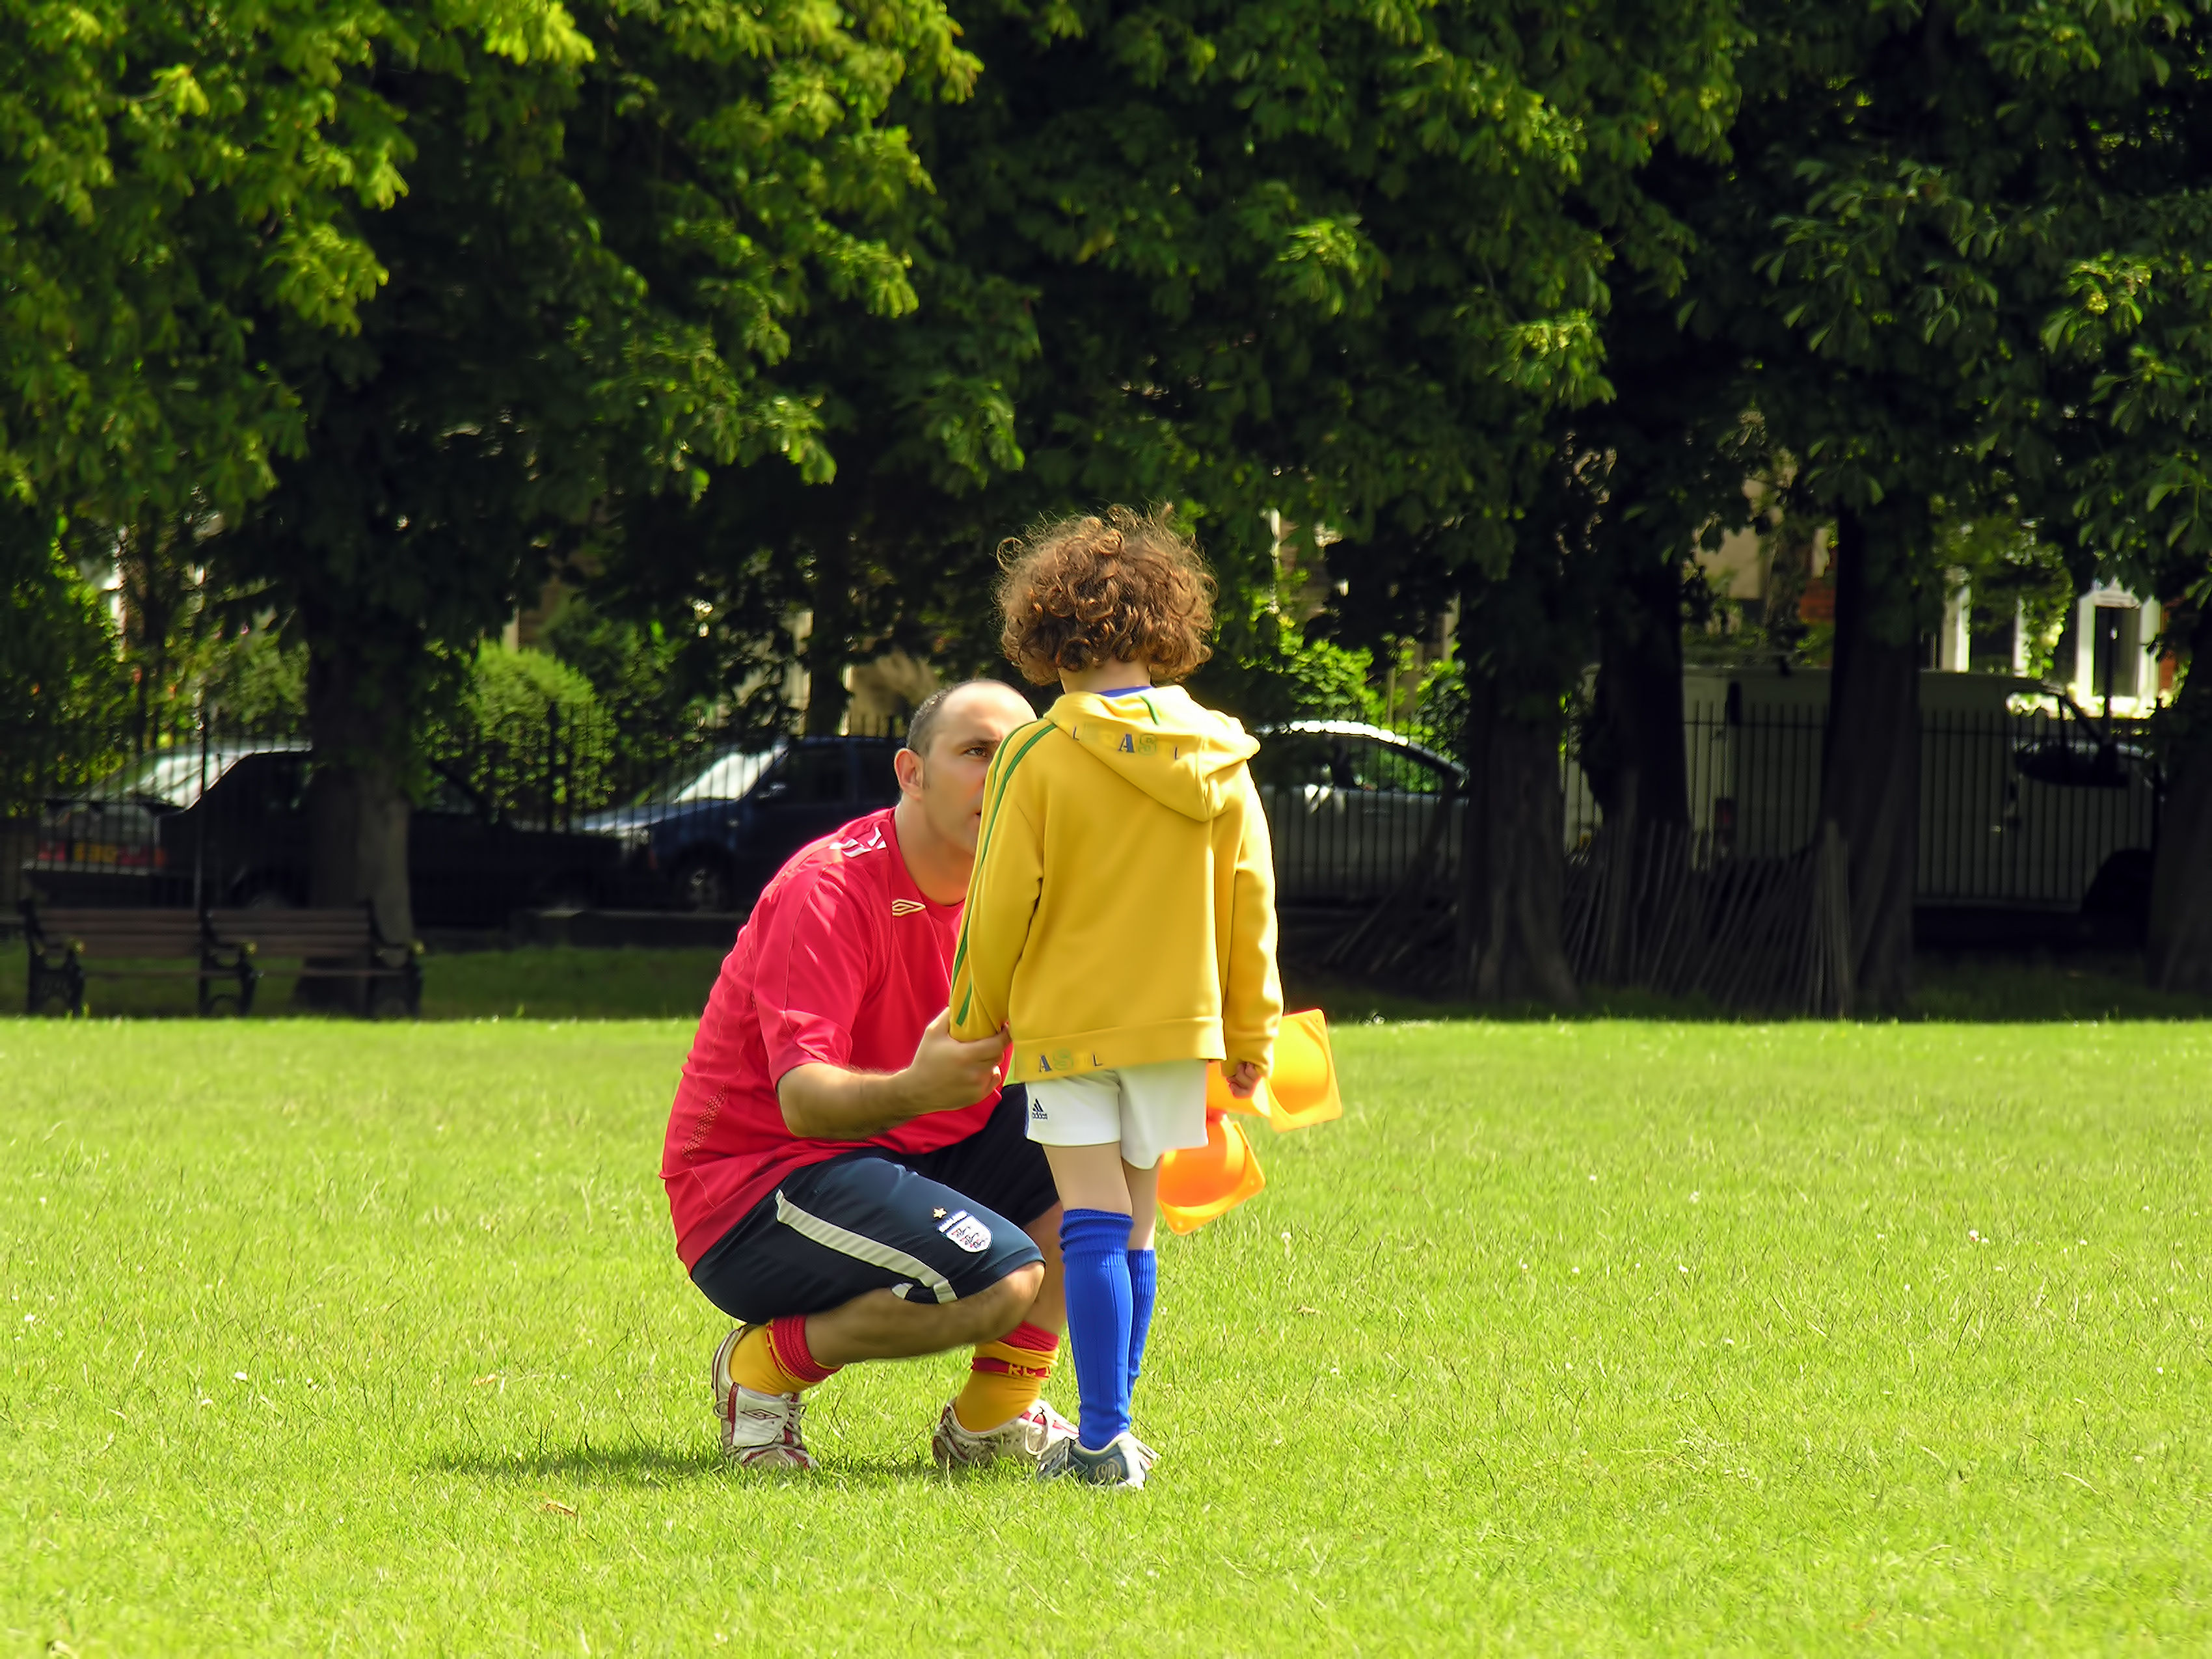 Being a parent AND a great coach